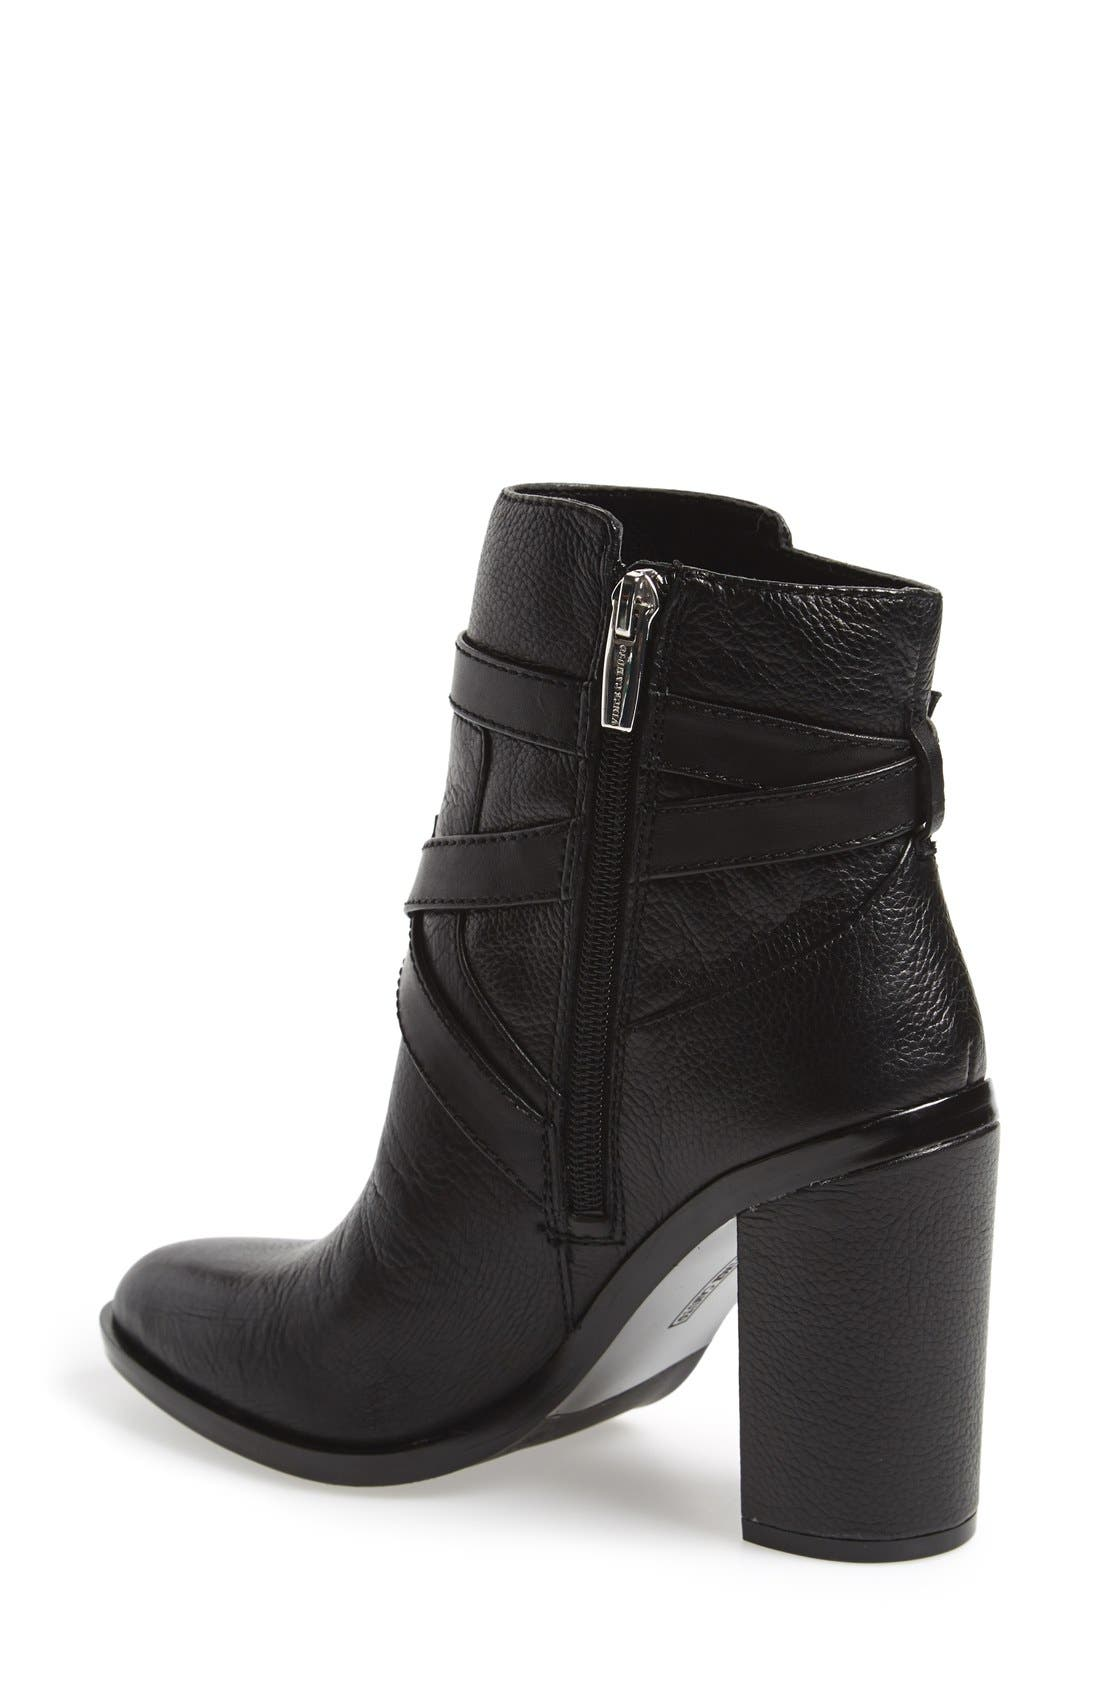 'Gravell' Belted Boot,                             Alternate thumbnail 2, color,                             001